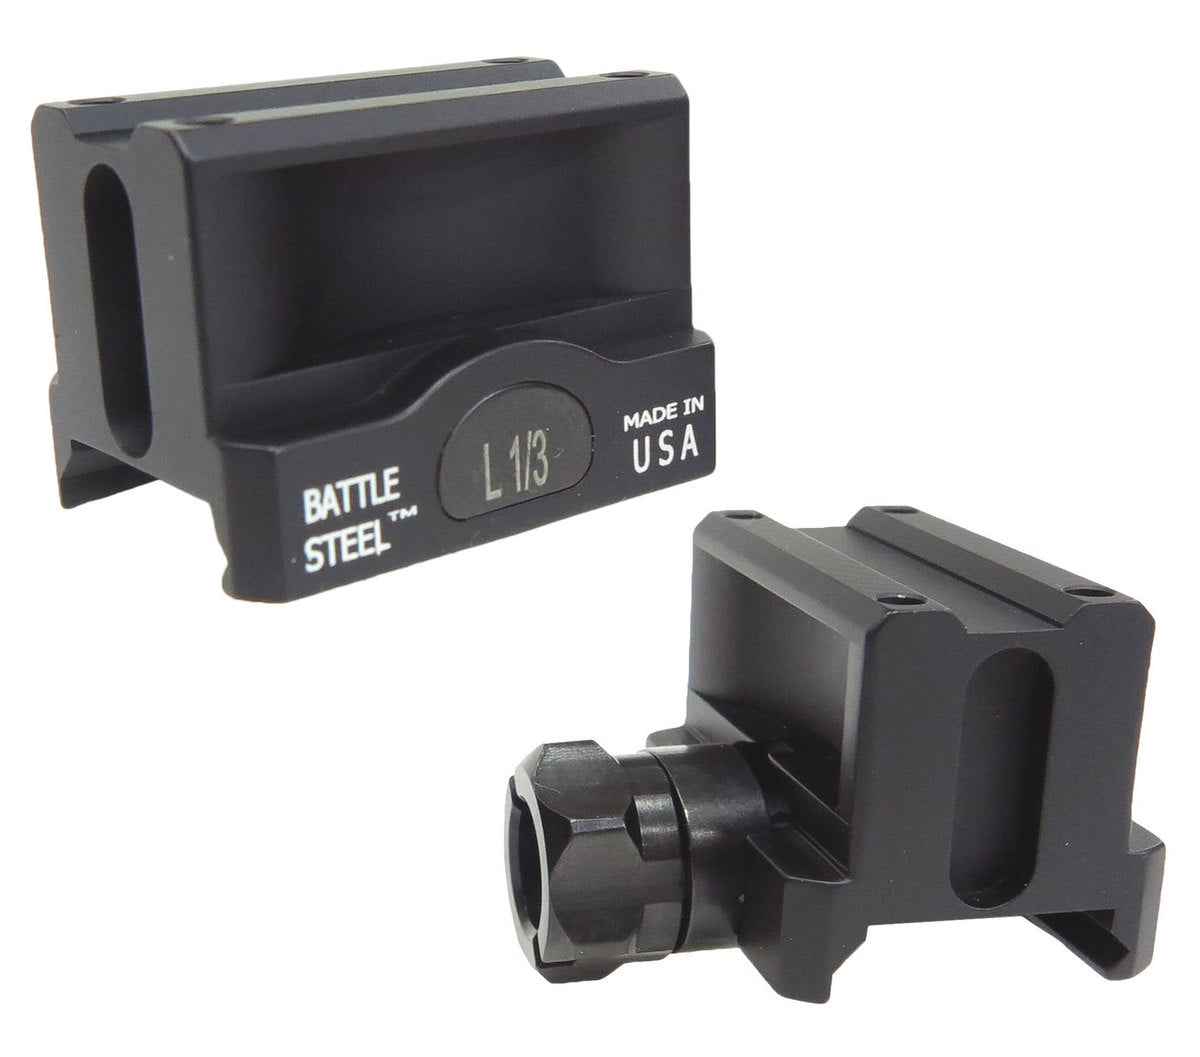 Battle Steel Trijicon MRO Full Co-Witness Mount